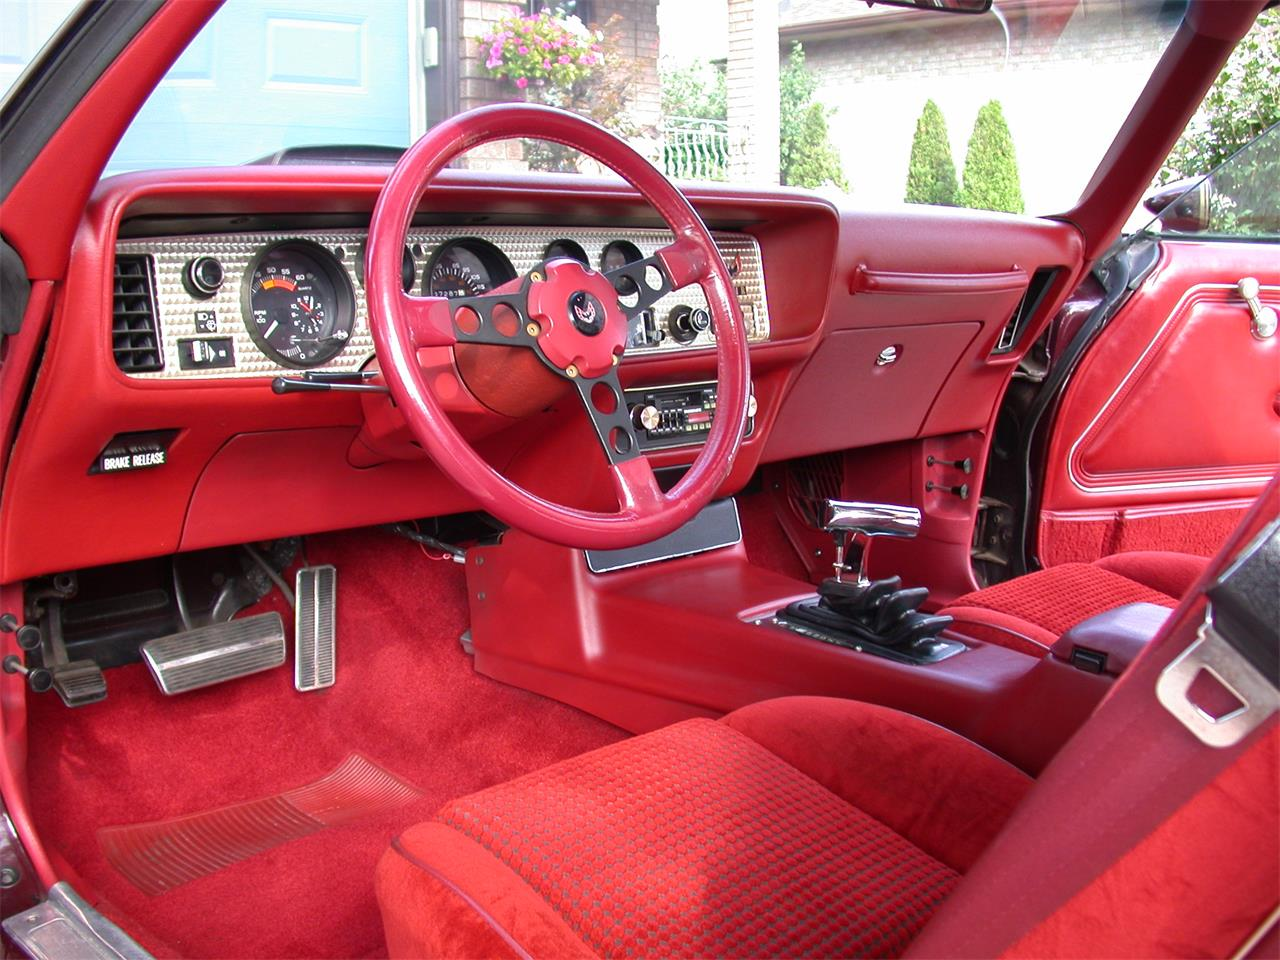 Large Picture of '80 Firebird Trans Am located in Niagara Falls New York - $24,000.00 - OCWB